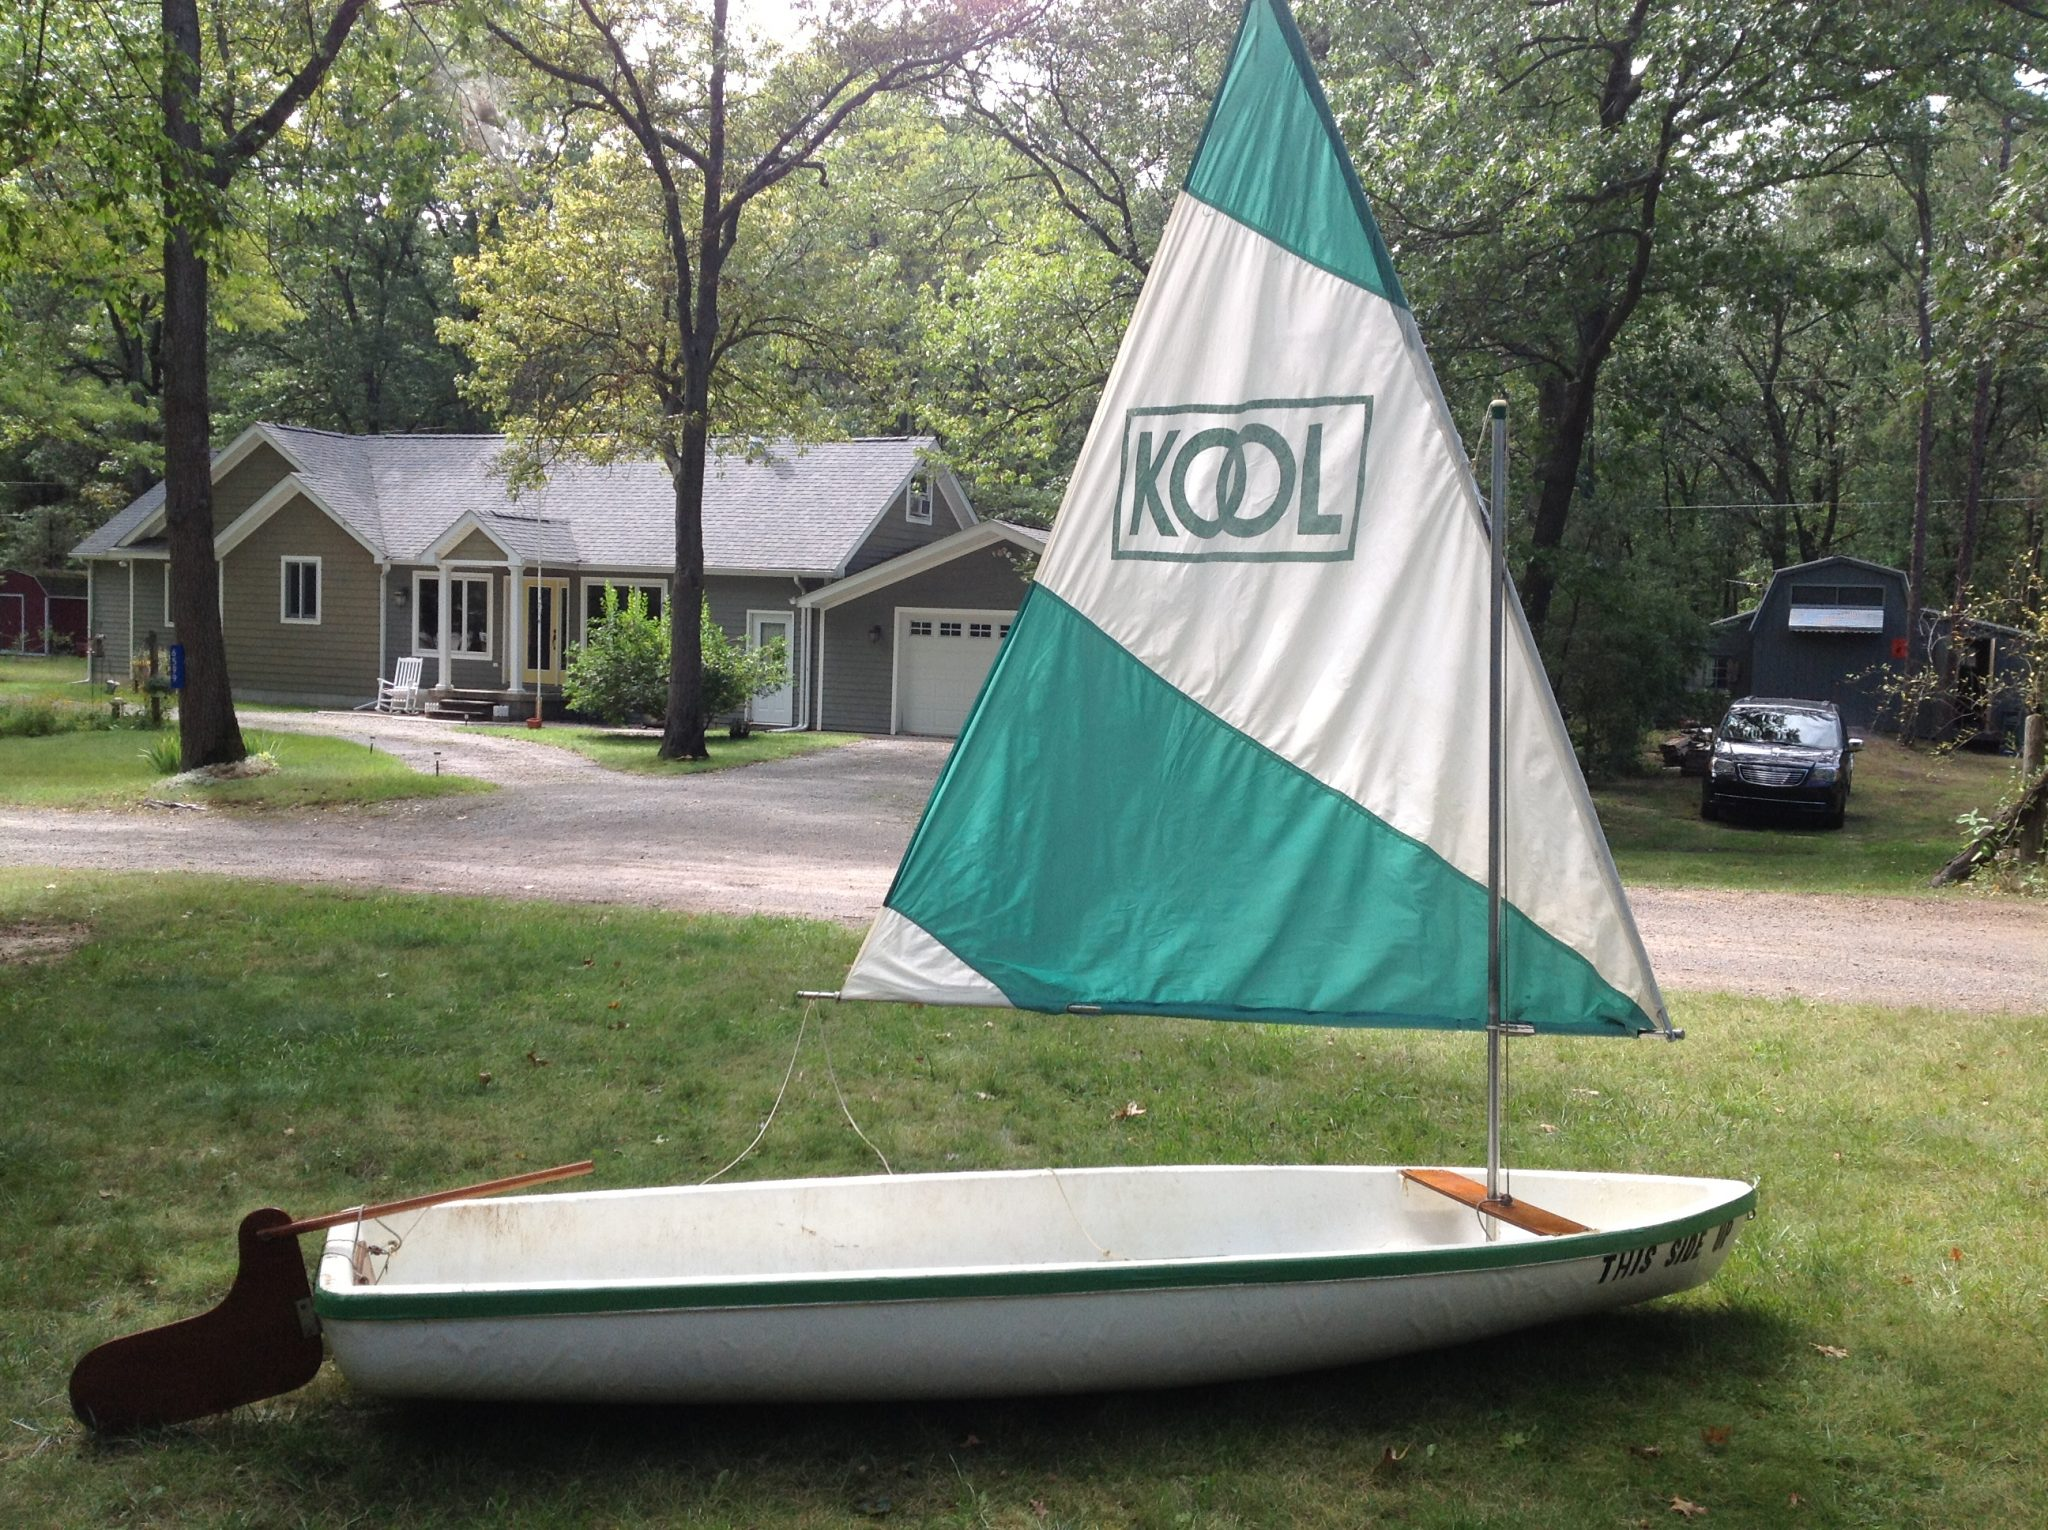 Kool Cigarette Sailboat